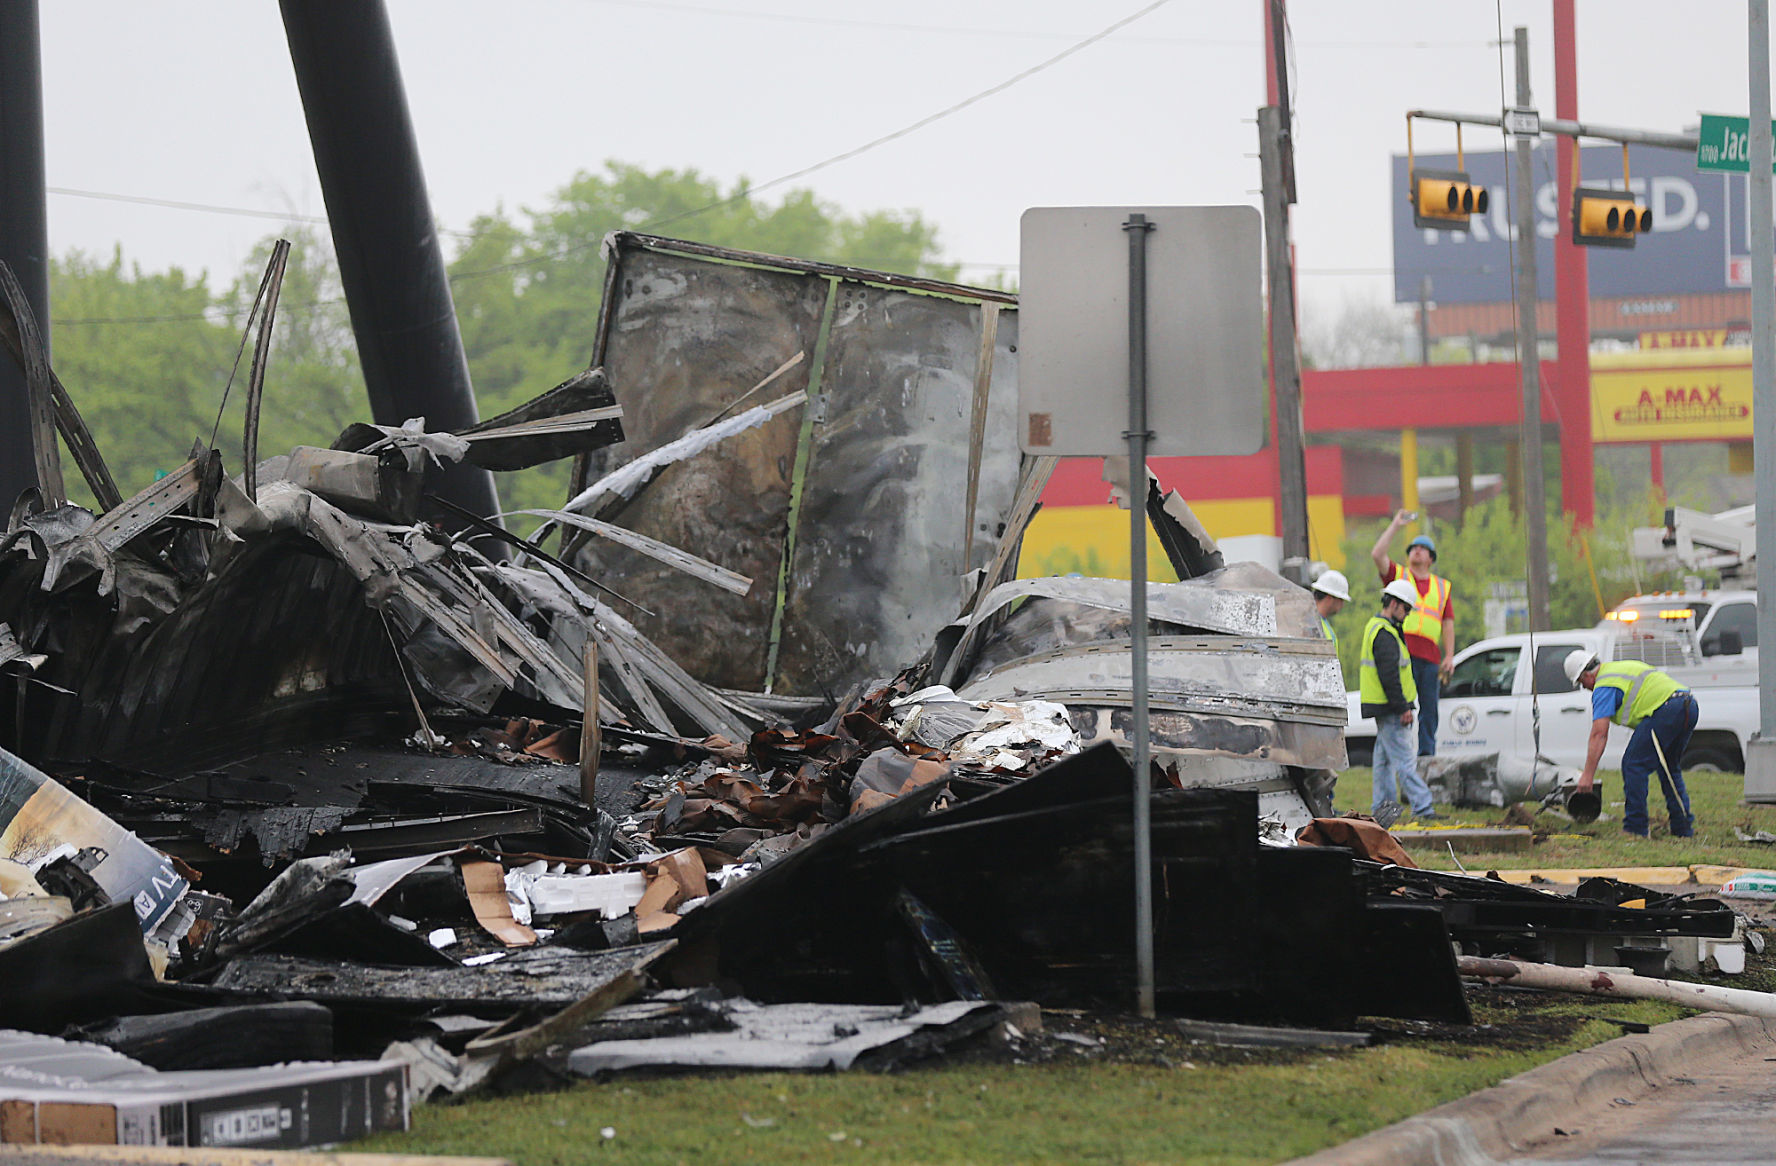 Traffic Accident Investigator Cover Letter Driver Killed In Fiery 18 Wheeler Crash Along I 35 In Waco